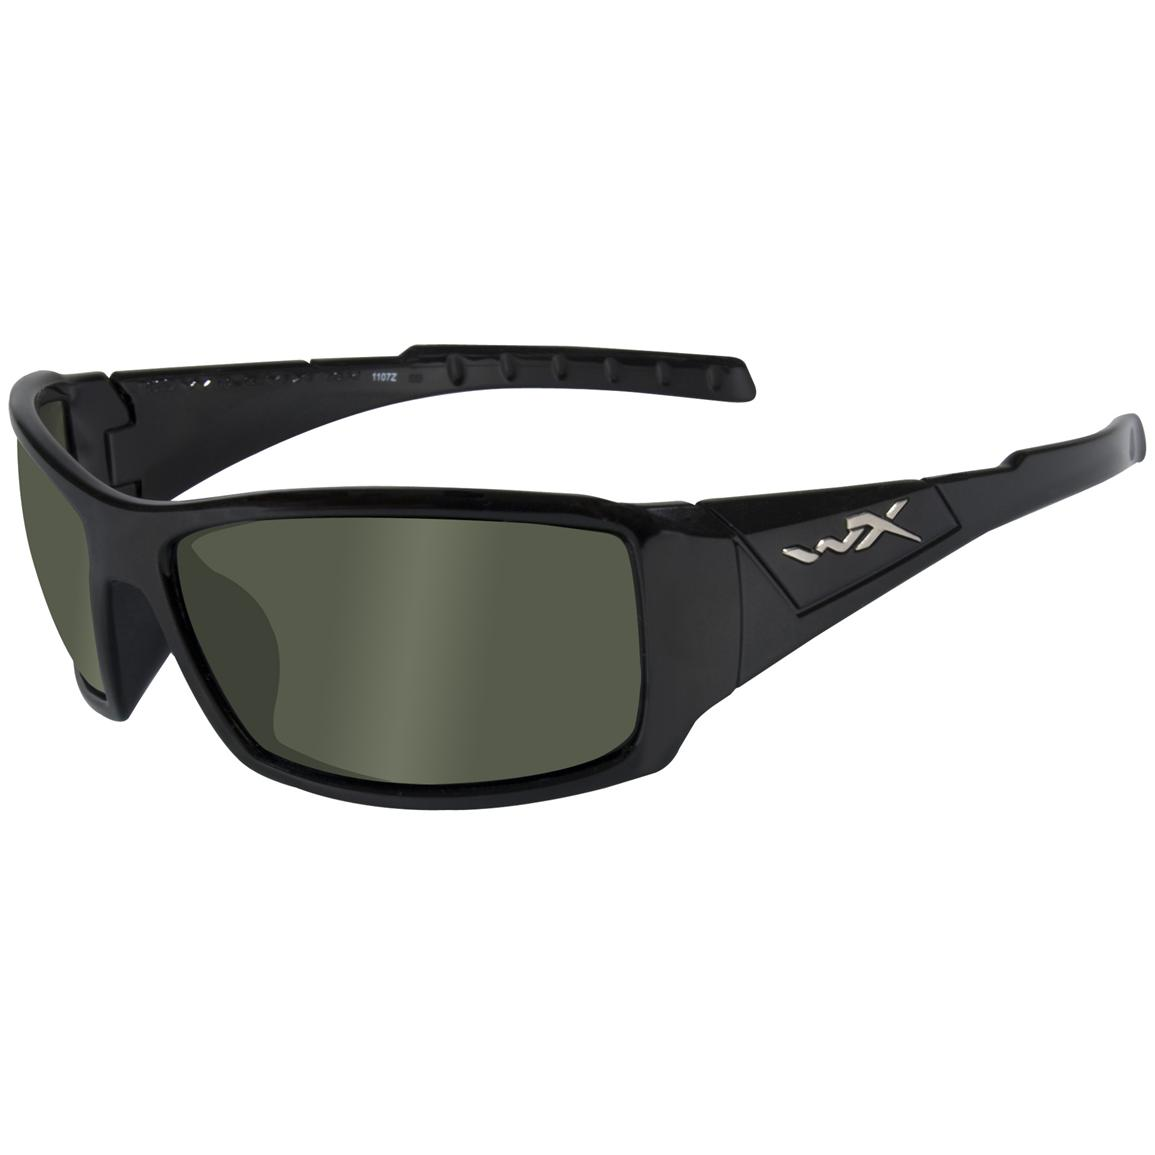 Wiley X® Twisted Street Polarized Sunglasses, Green